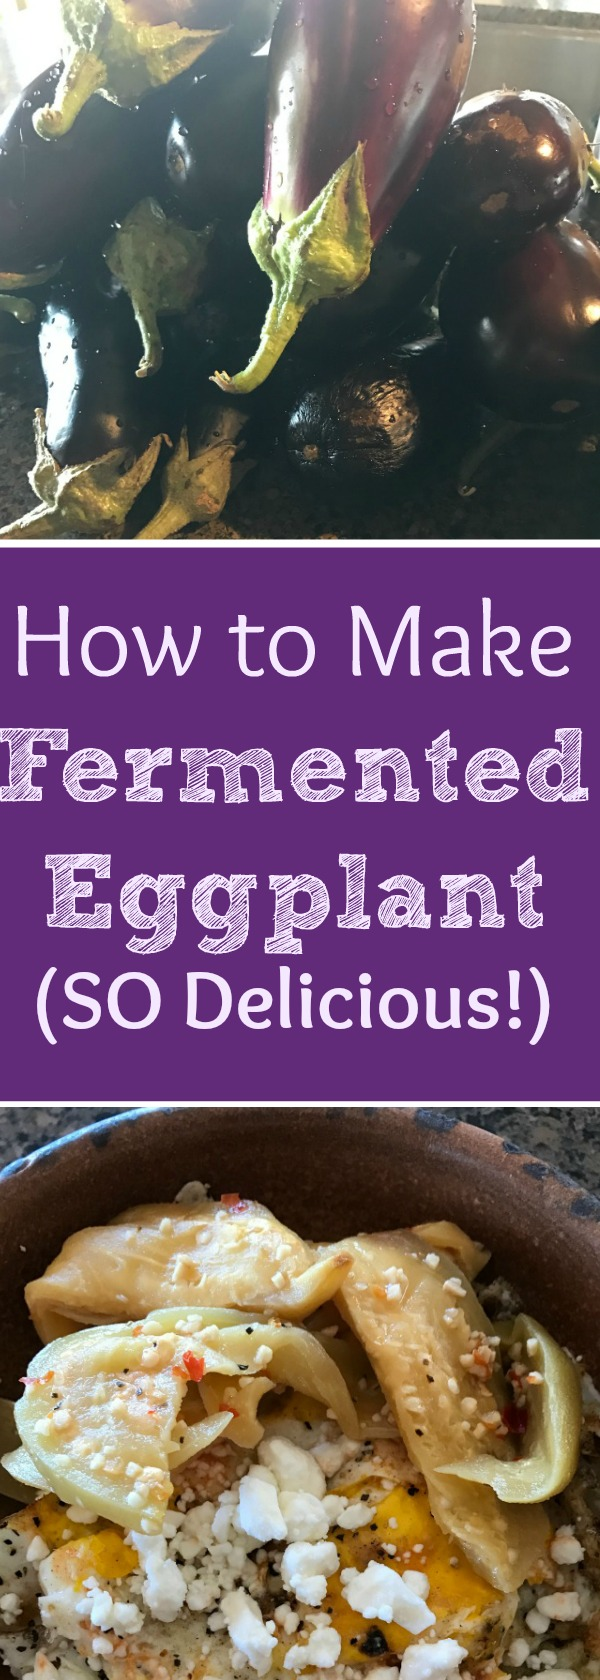 I LOVE eggplant, and maybe you do too? However, many people don't have a fondness for it. So, here I'm going to share an  AMAZING Fermented Eggplant Recipe  that I think you'll love! It makes a fantastic garnish, or you can even cook it into other foods like stews and casseroles.